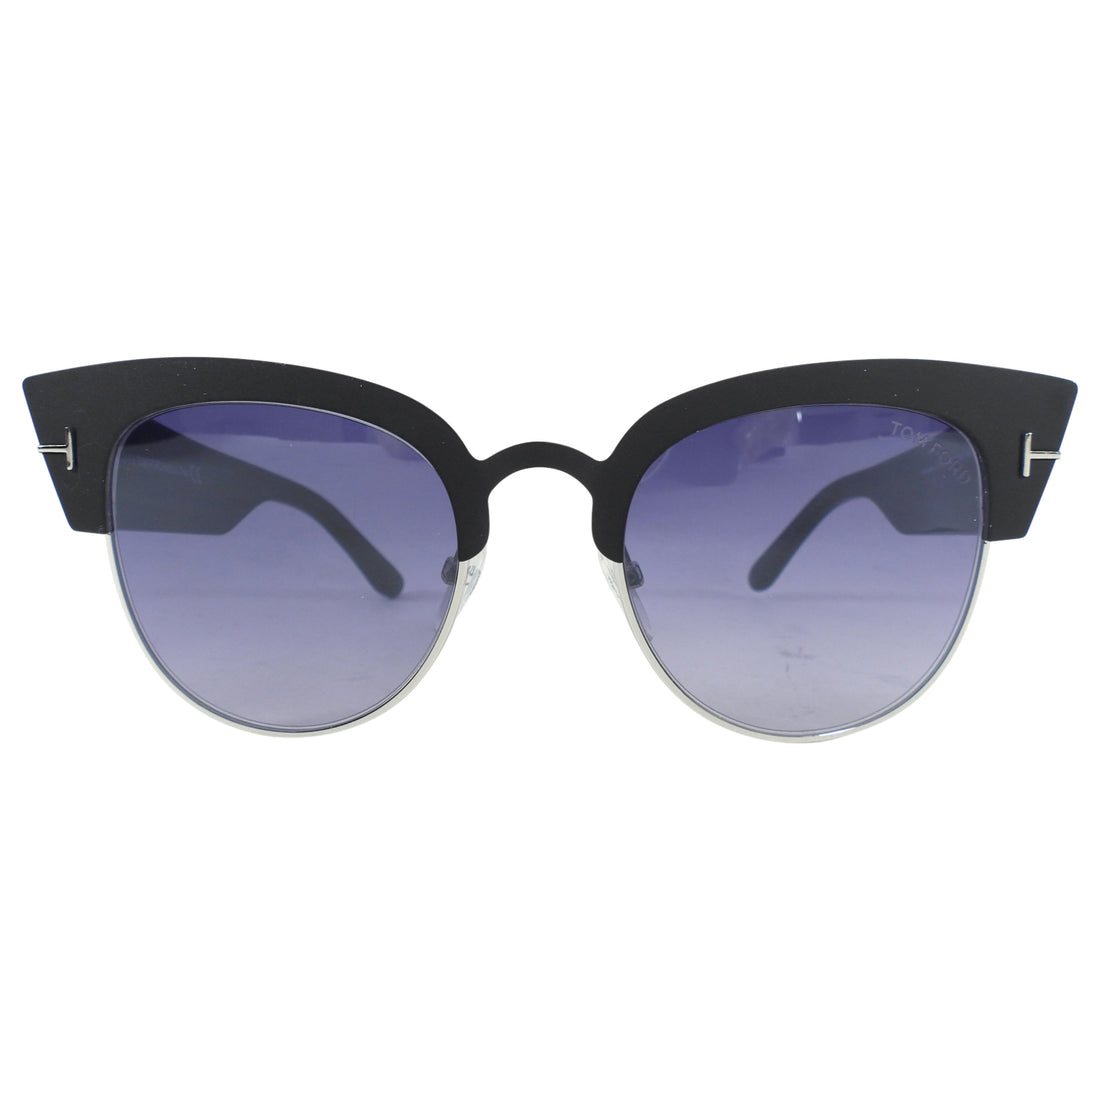 Tom Ford Alexandre TF607 Black Cat Eye Sunglasses